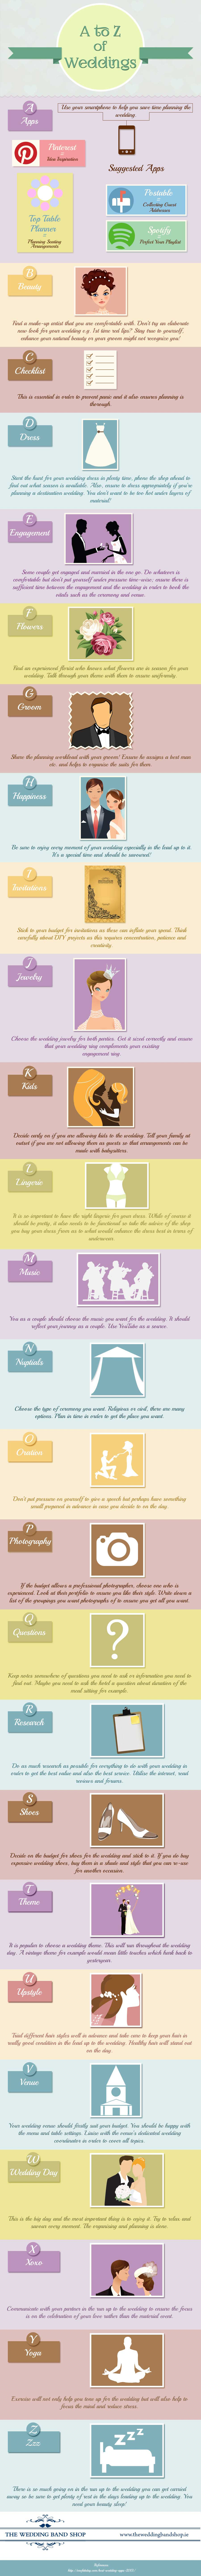 Wedding Tips from A to Z